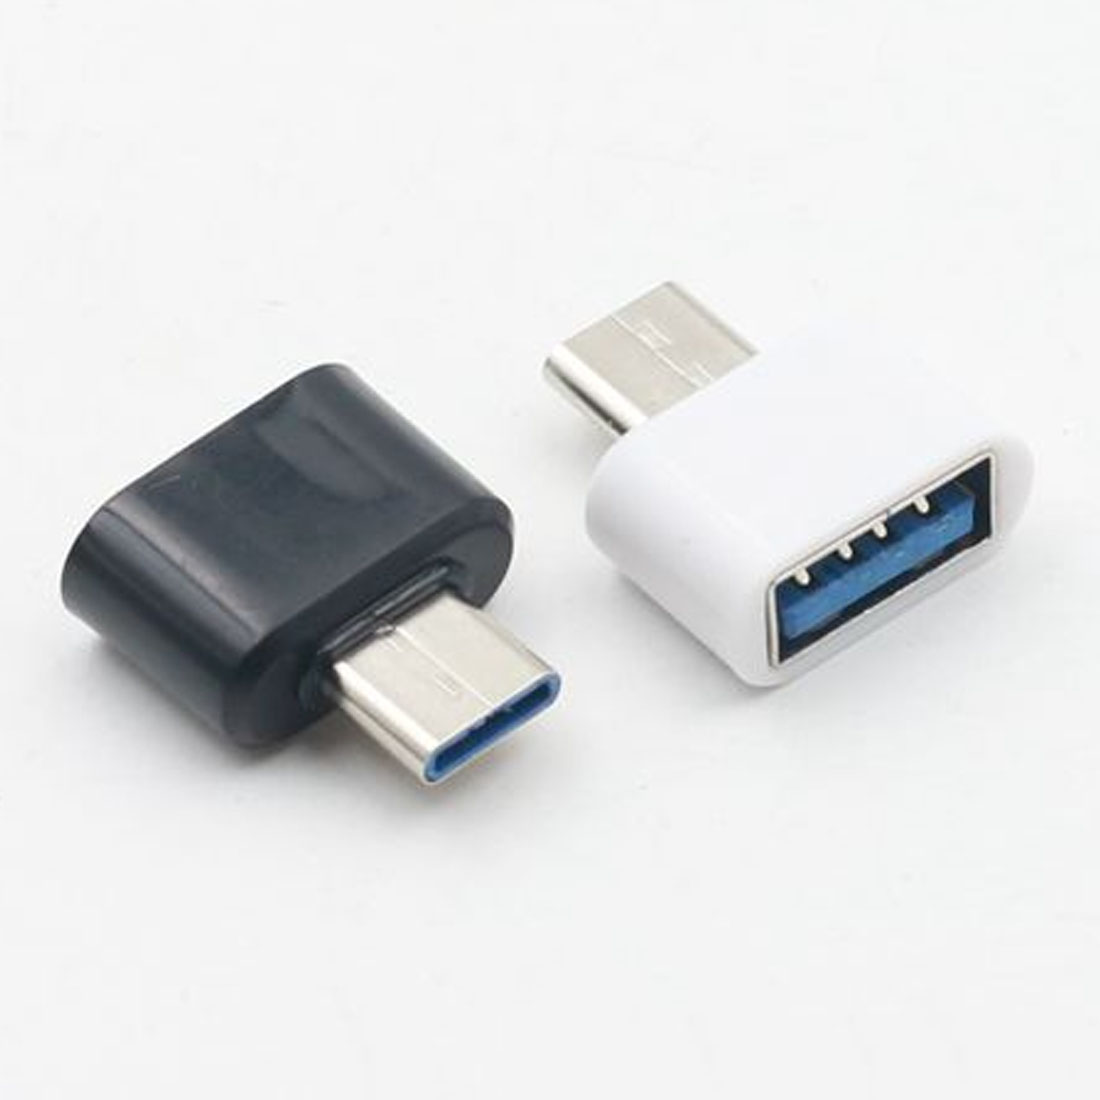 Mobile Phone Accessories Wire Material Mobile Phone Accessories Wire Material Type-C To USB Adapter